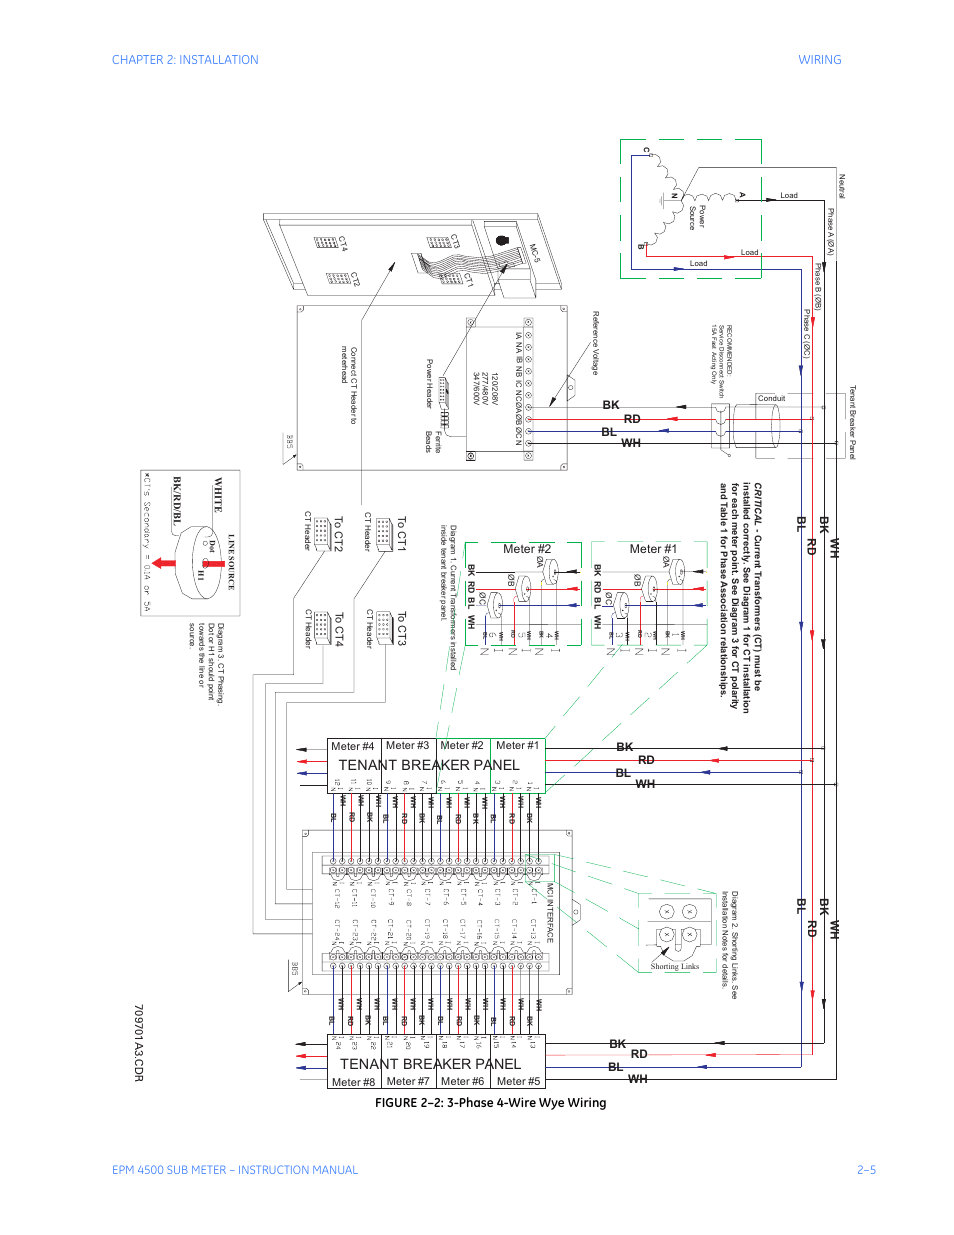 hight resolution of tenant breaker panel chapter 2 installation wiring figure 2 2 3